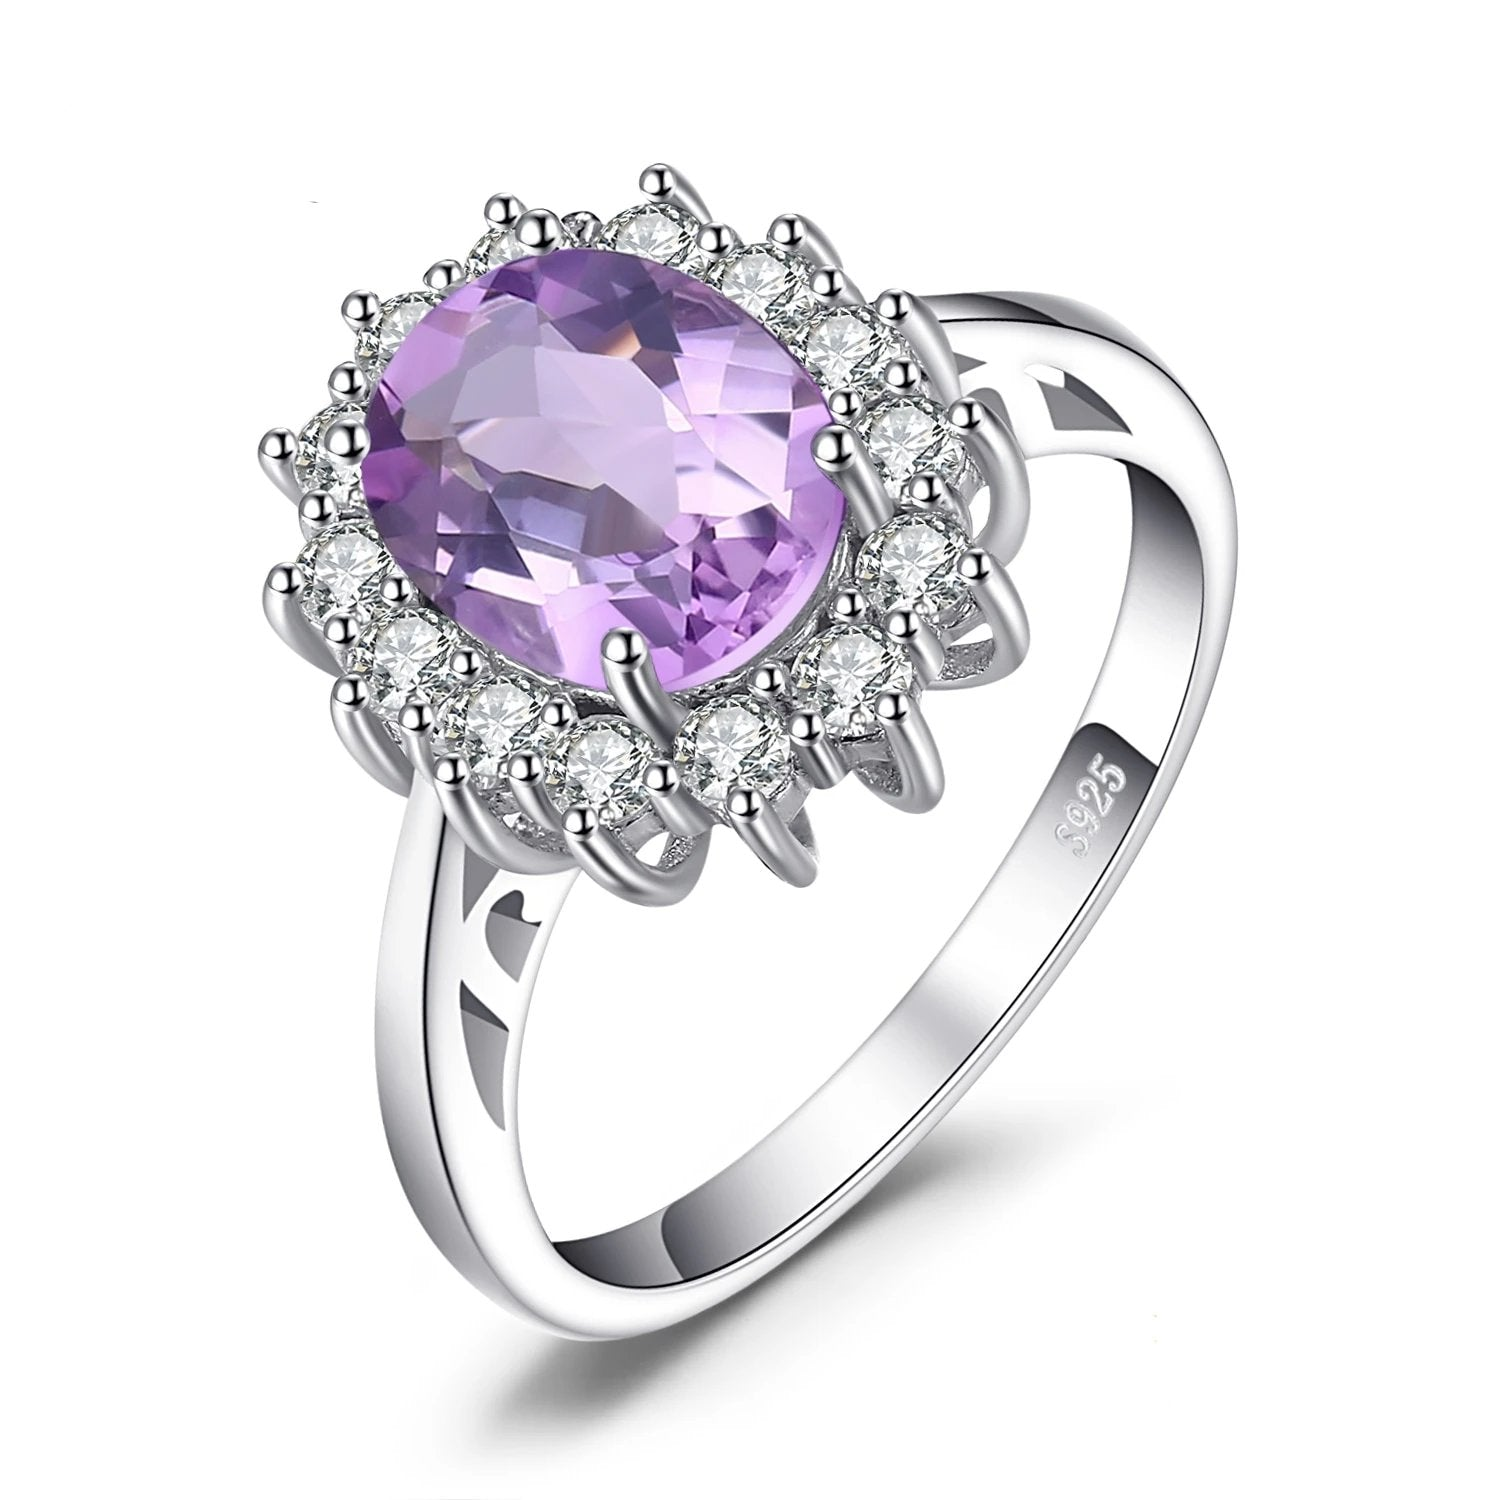 Princess Diana Genuine Amethyst Ring Engagement Ring - RHEA LIGHT